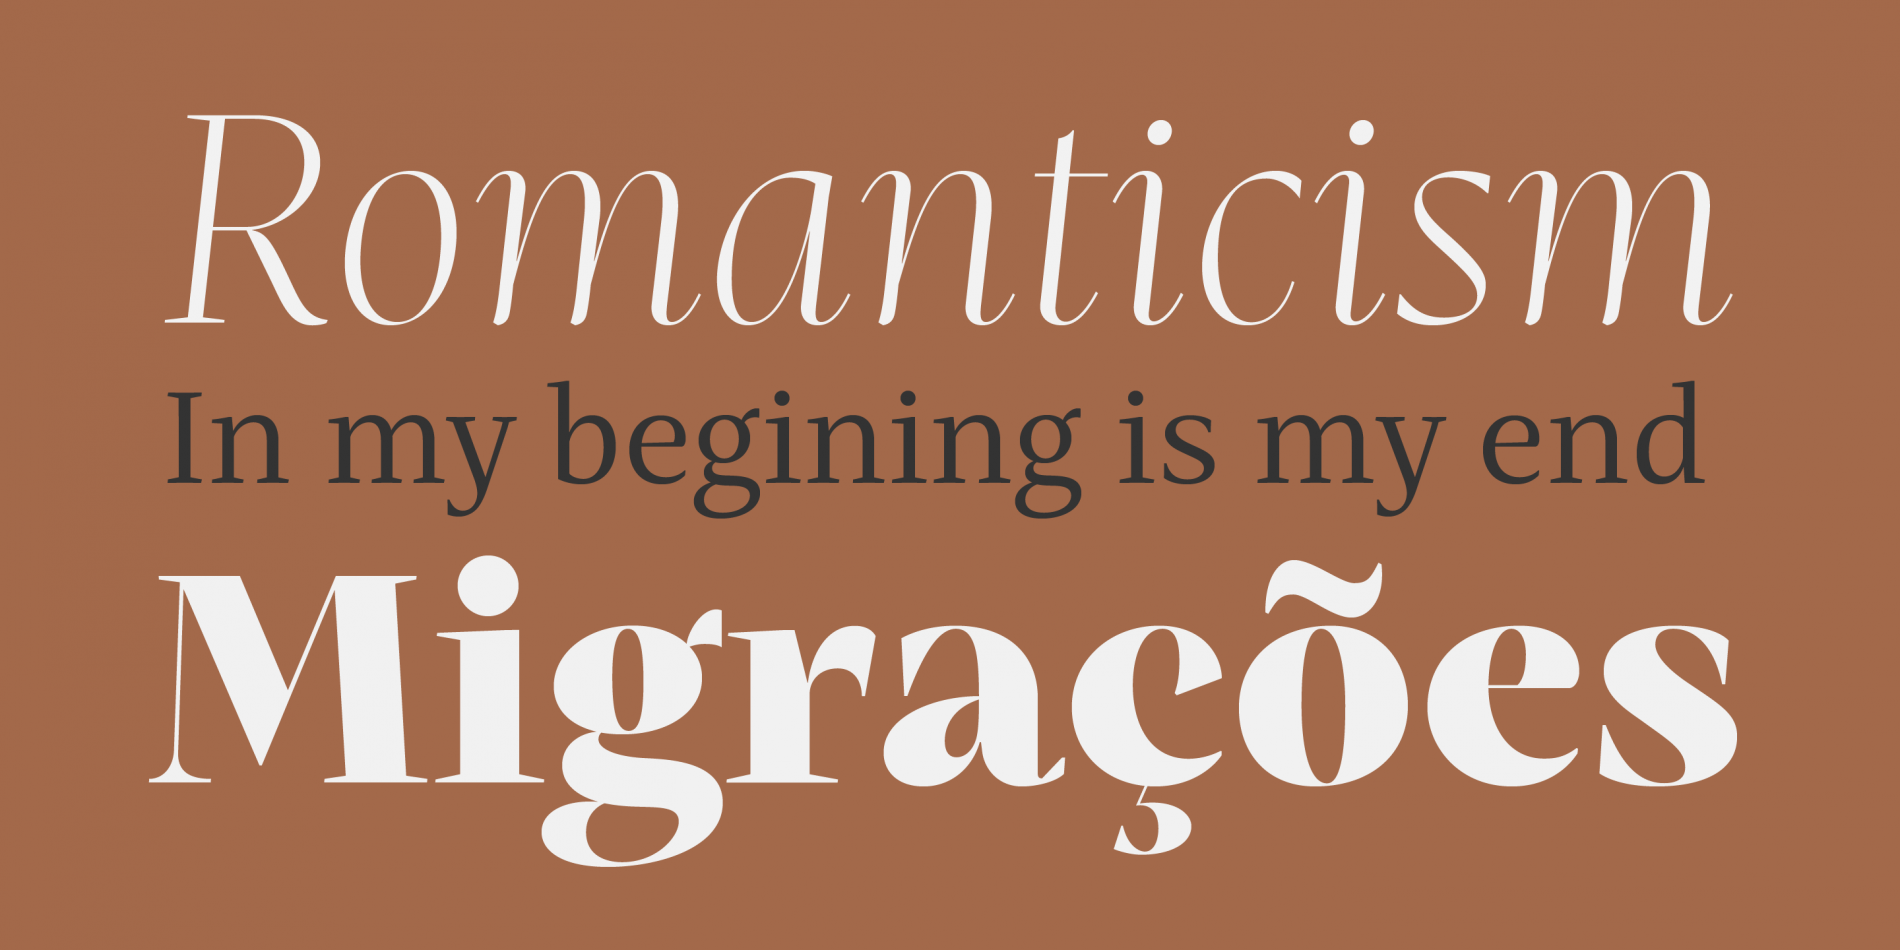 Mastro is a contemporary serif in 4 optical sizes: Display, Sub-head, Text and Caption. All styles are currently 75% off.